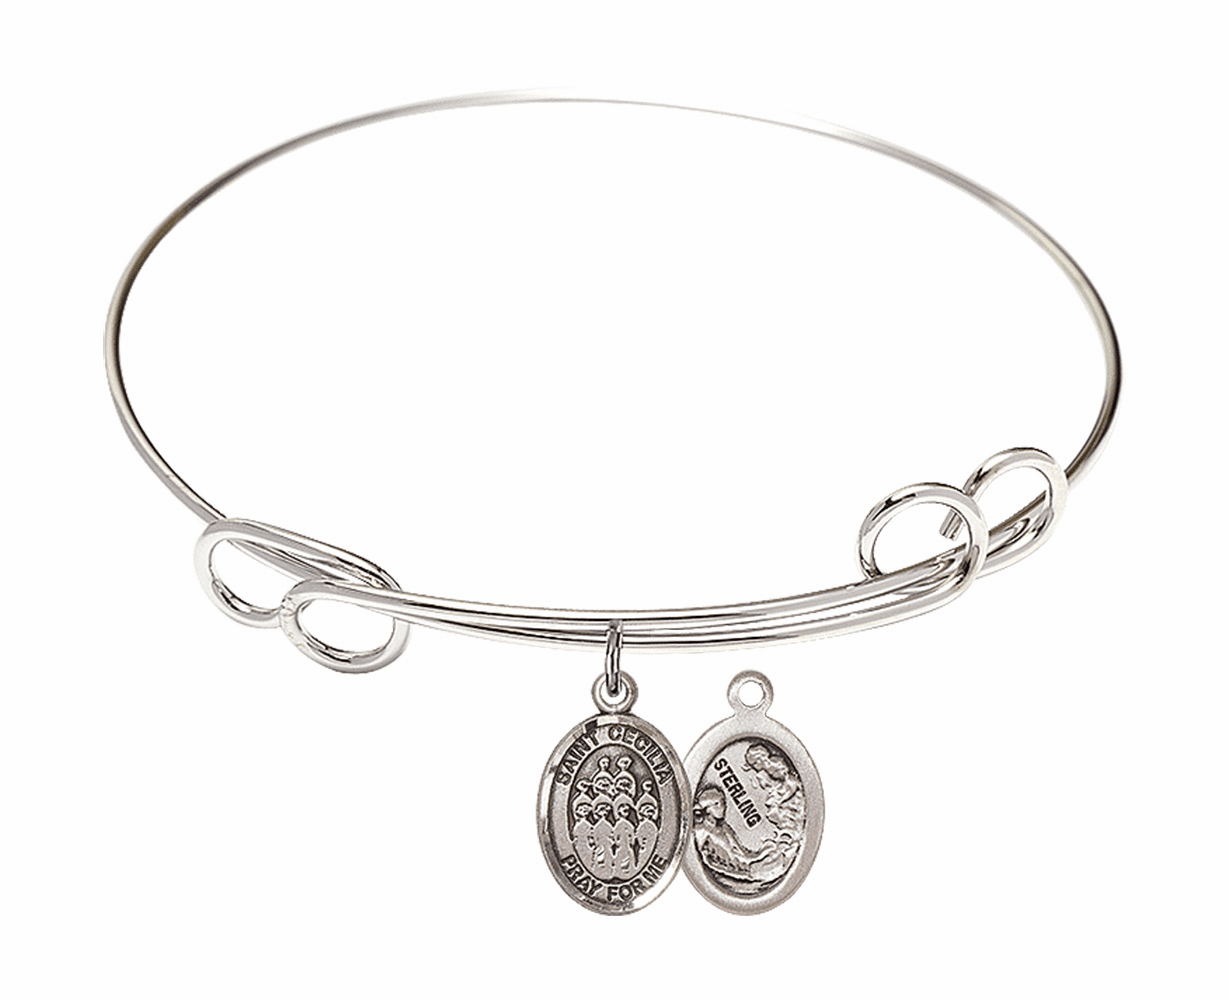 Round Loop St Cecilia Choir Bangle Charm Bracelet by Bliss